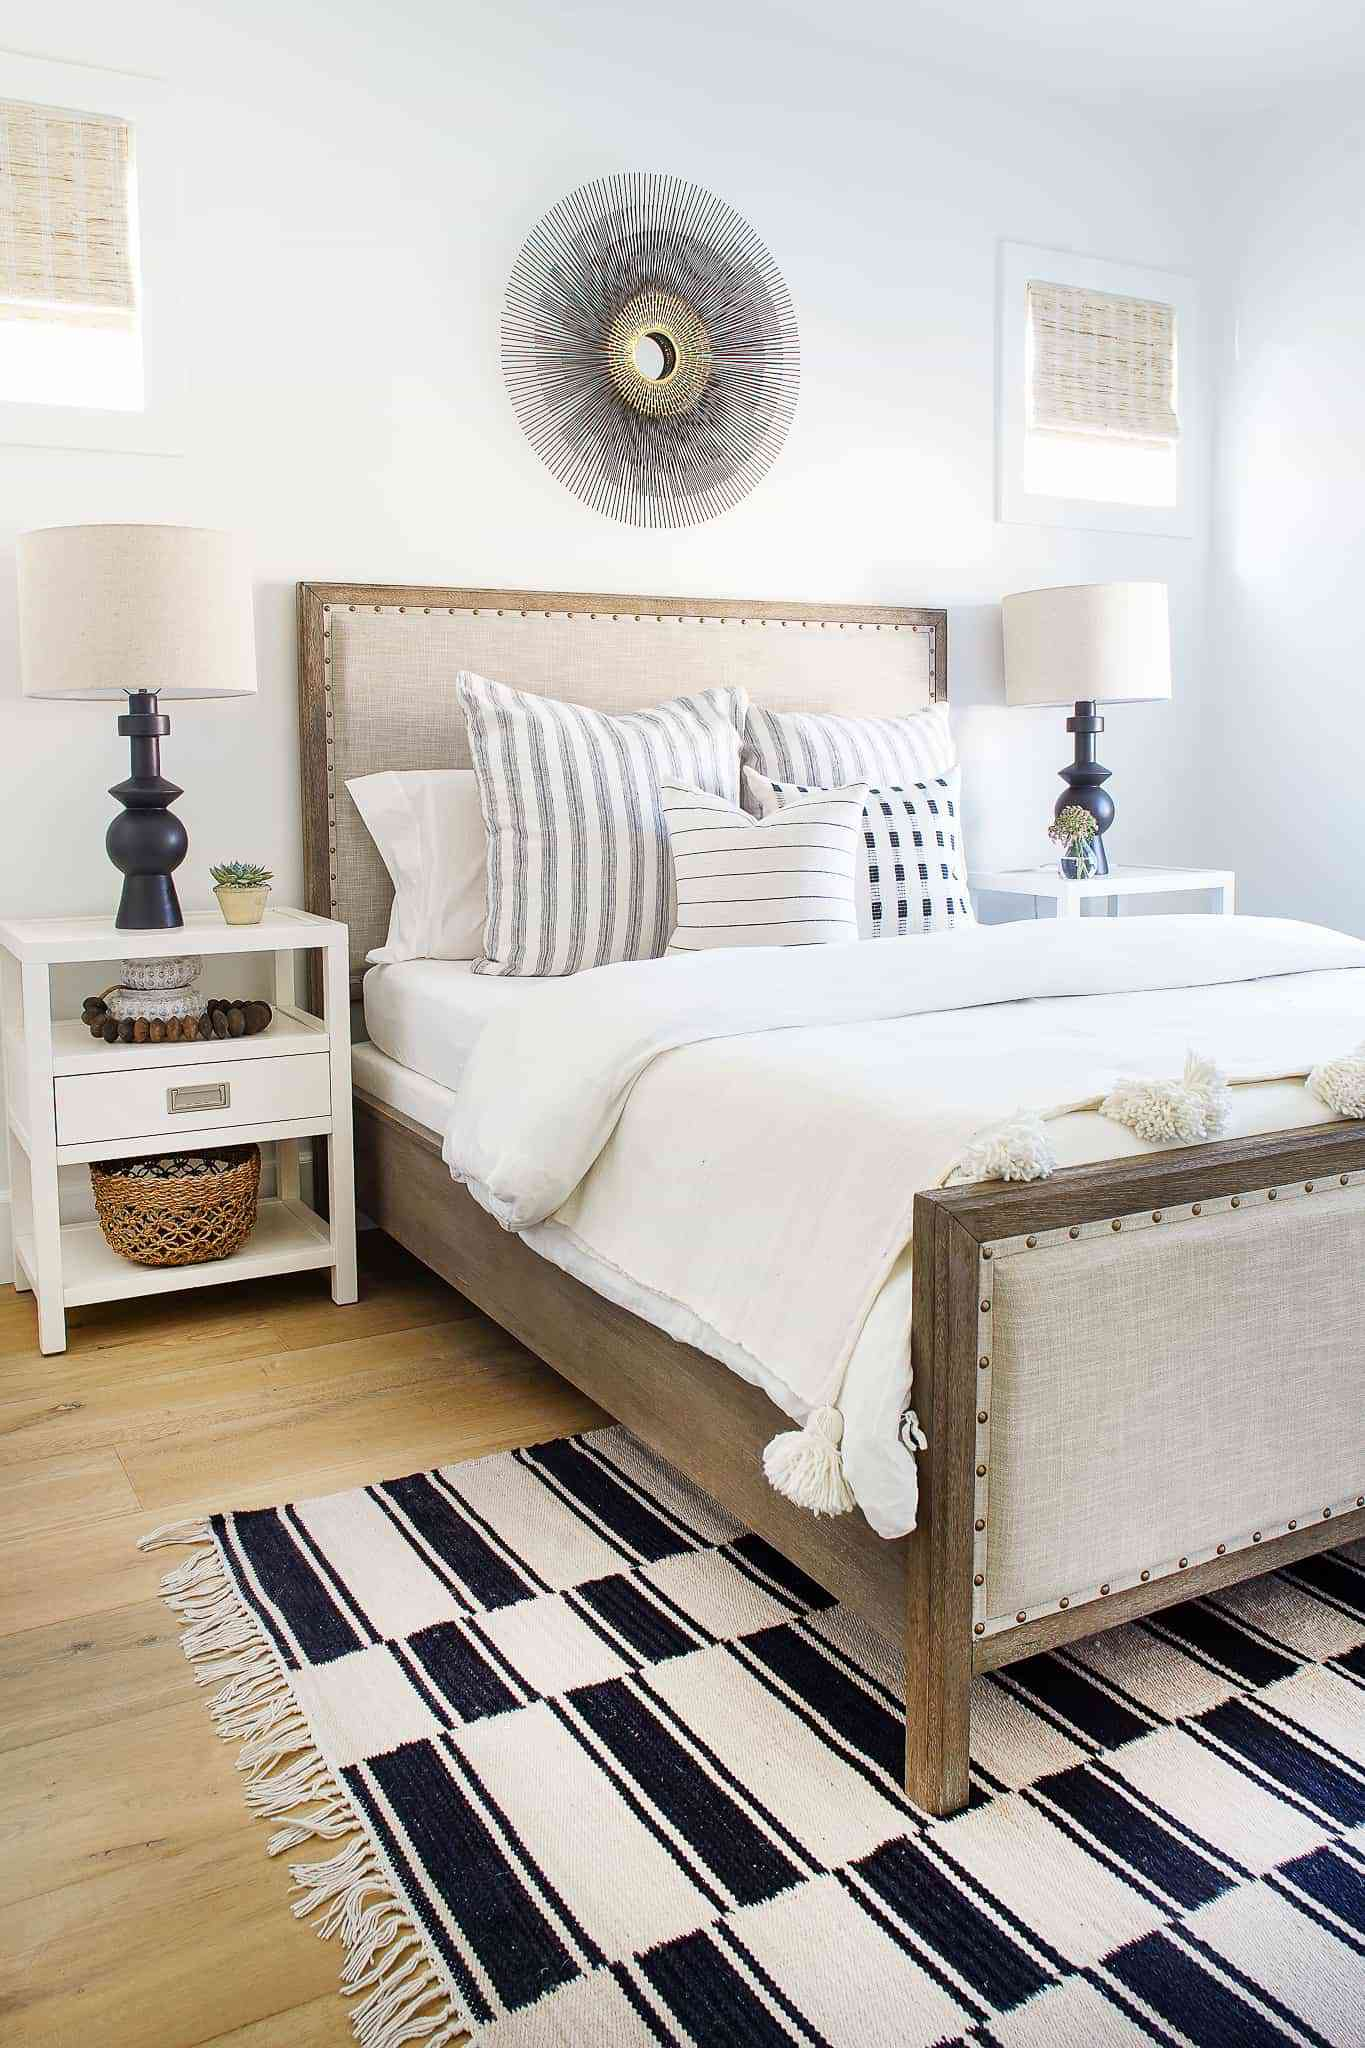 bedroom with white bedding, brown bed frame, white side table, black and white rug under half of the bed